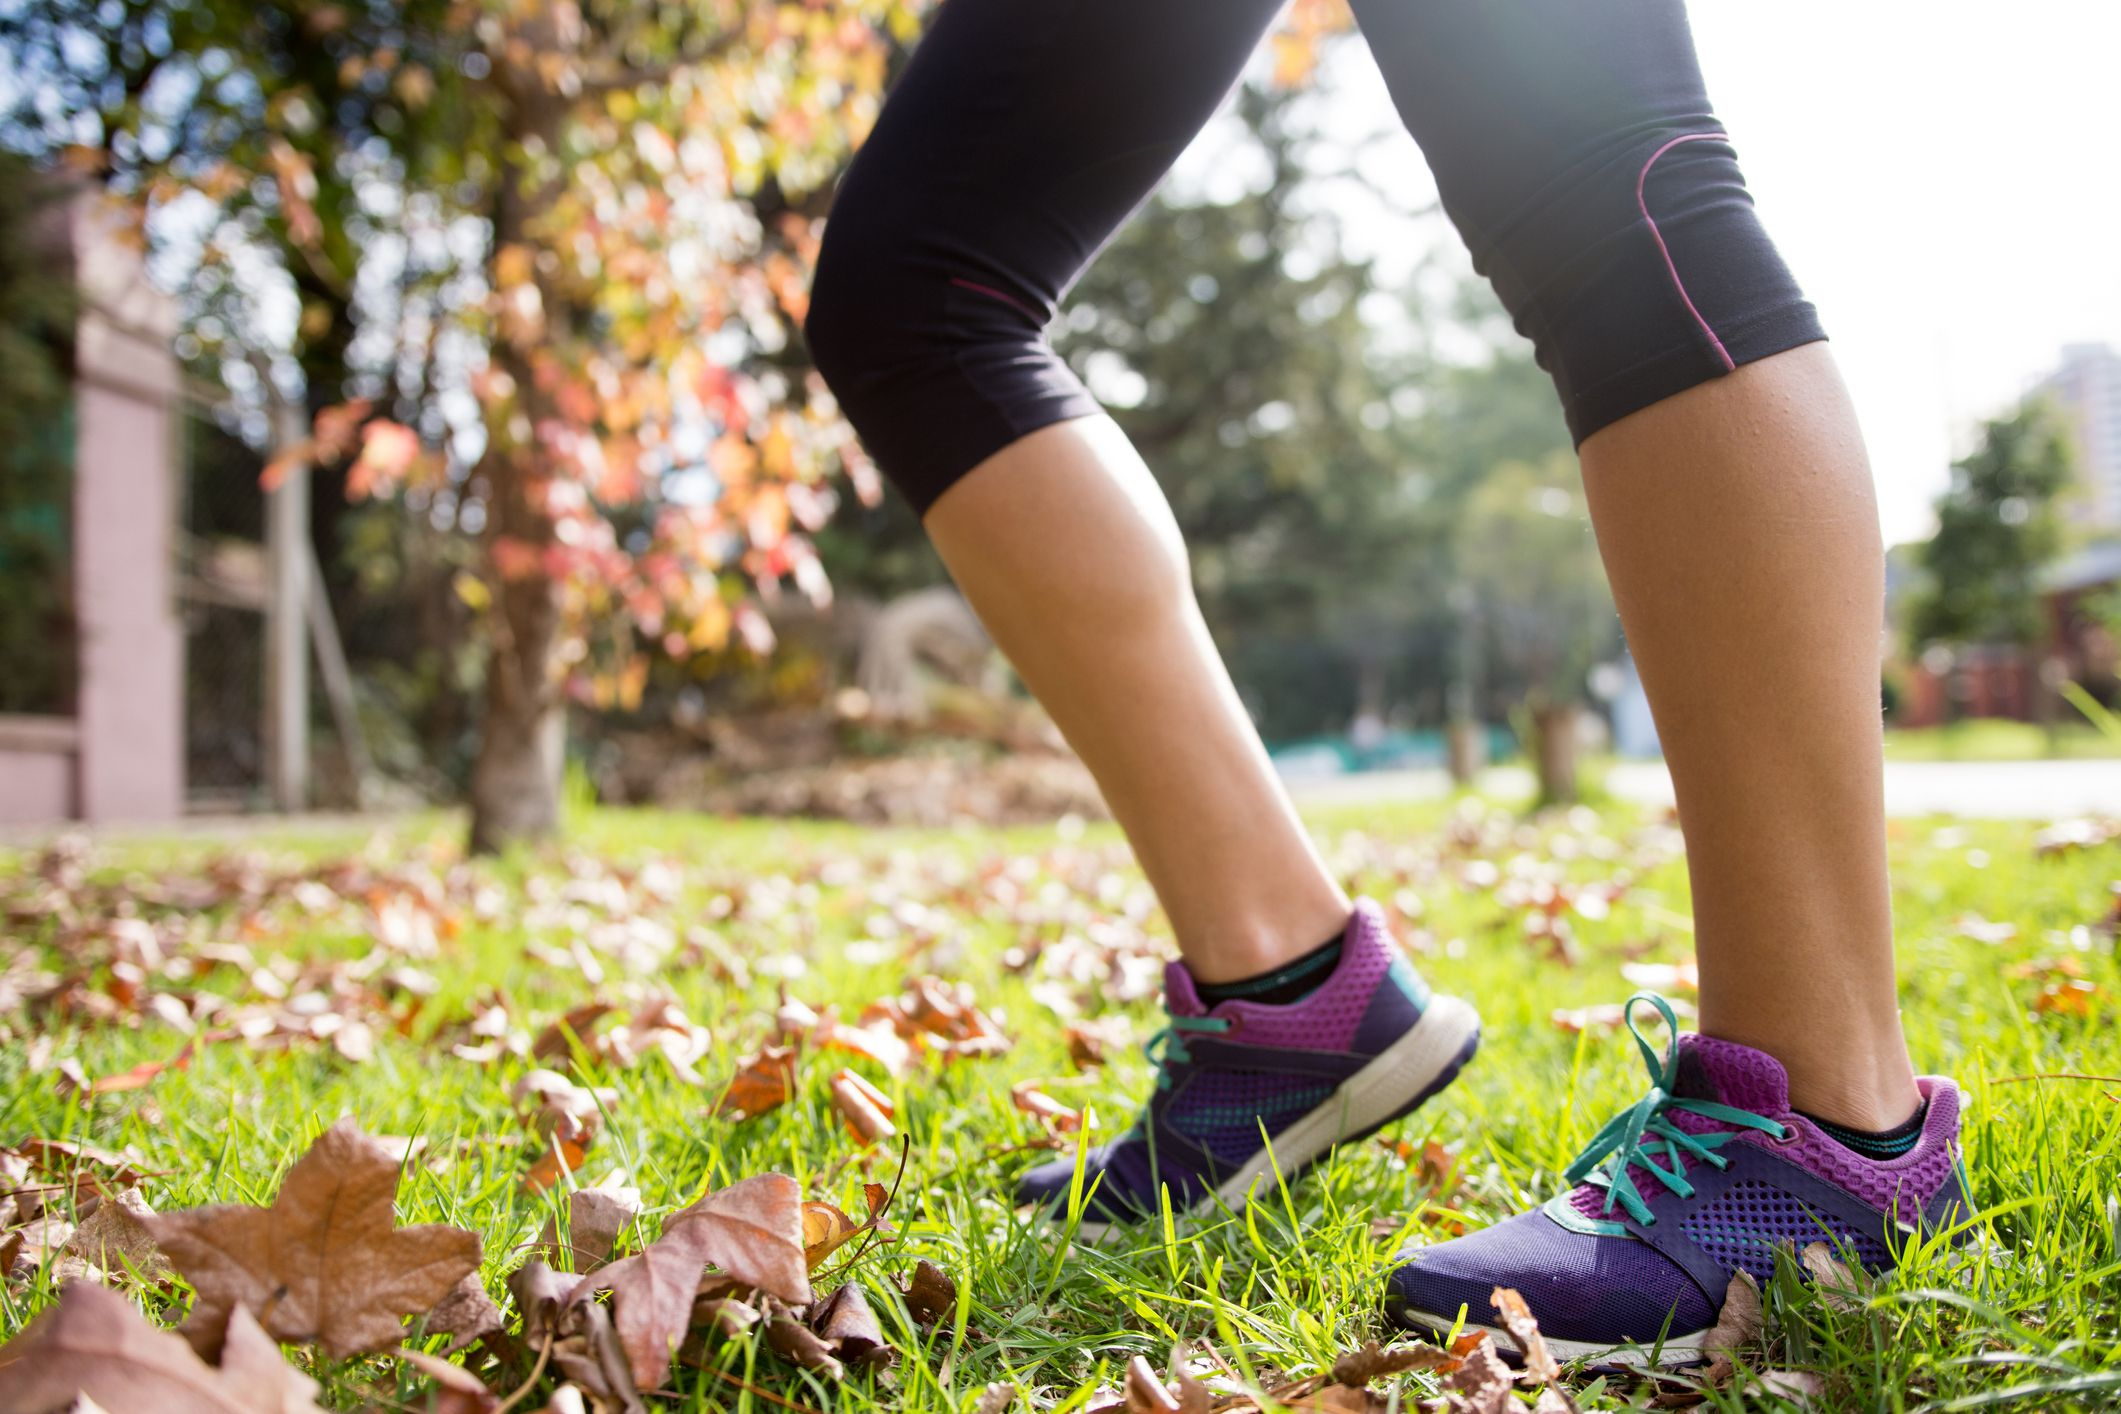 The 8 Best Free Walking Apps for Fitness Walkers of 2021